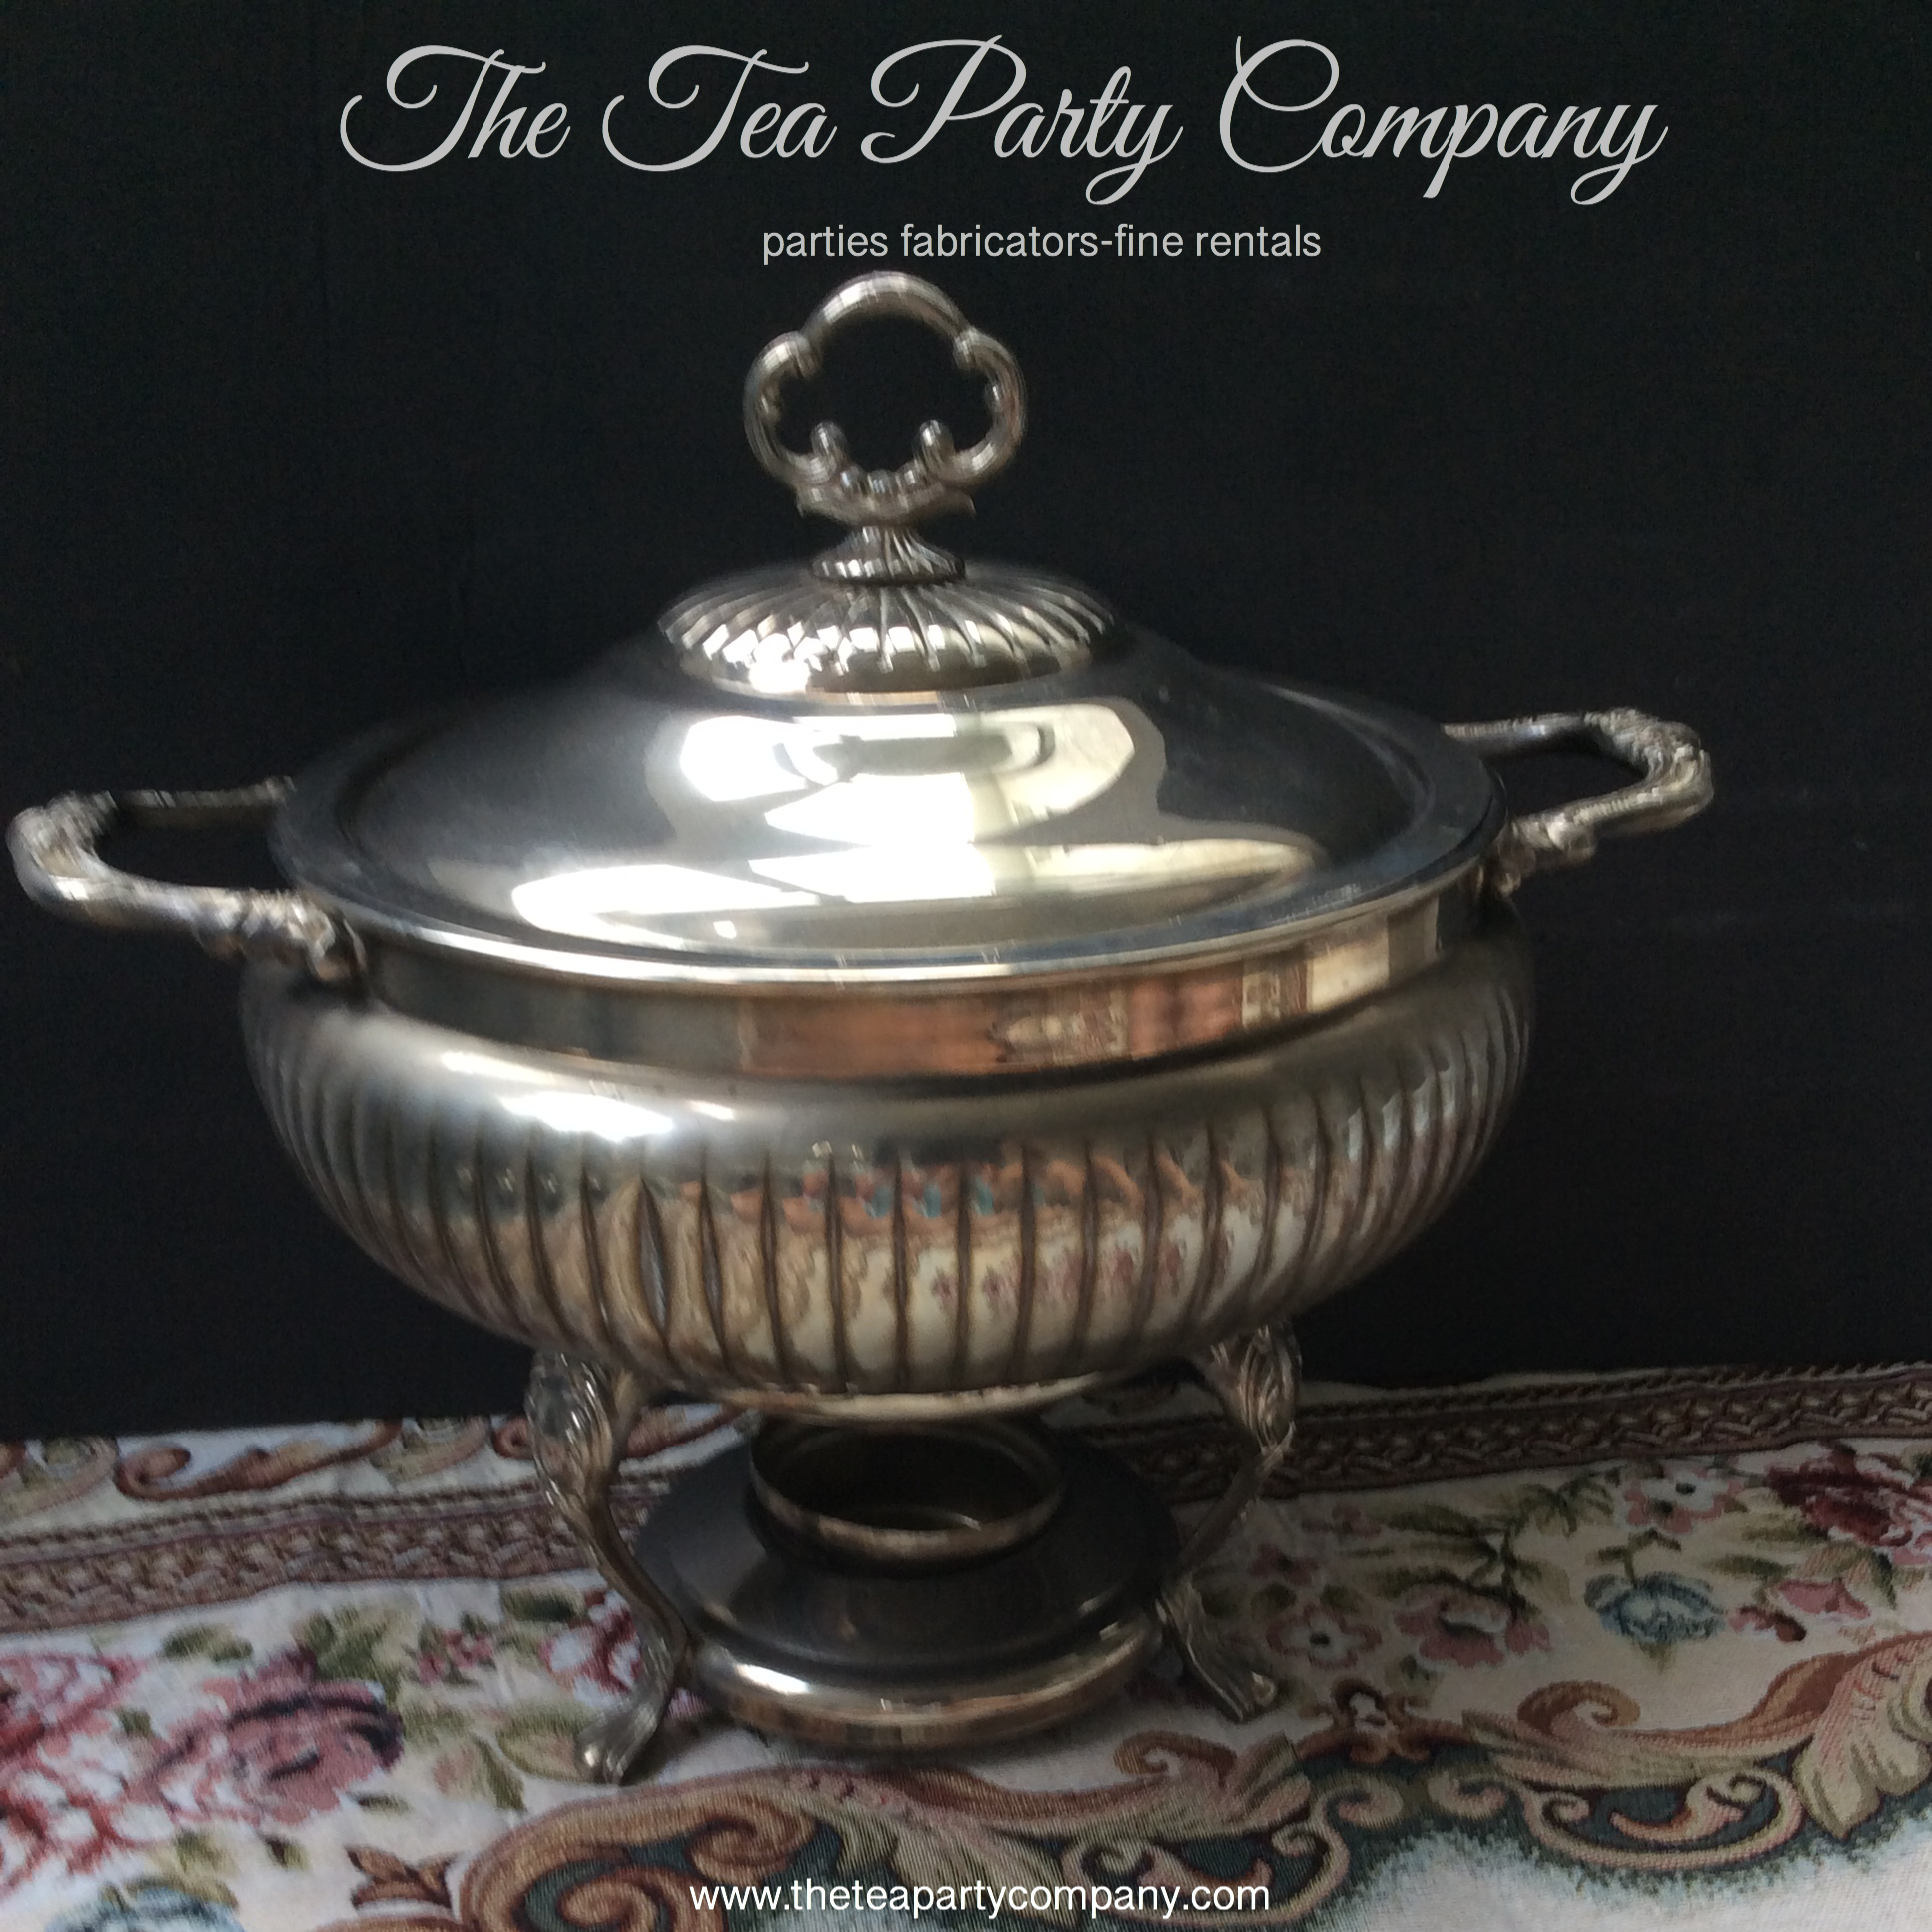 Chafing Dish Vintage Warmer Collection The Tea Party Company